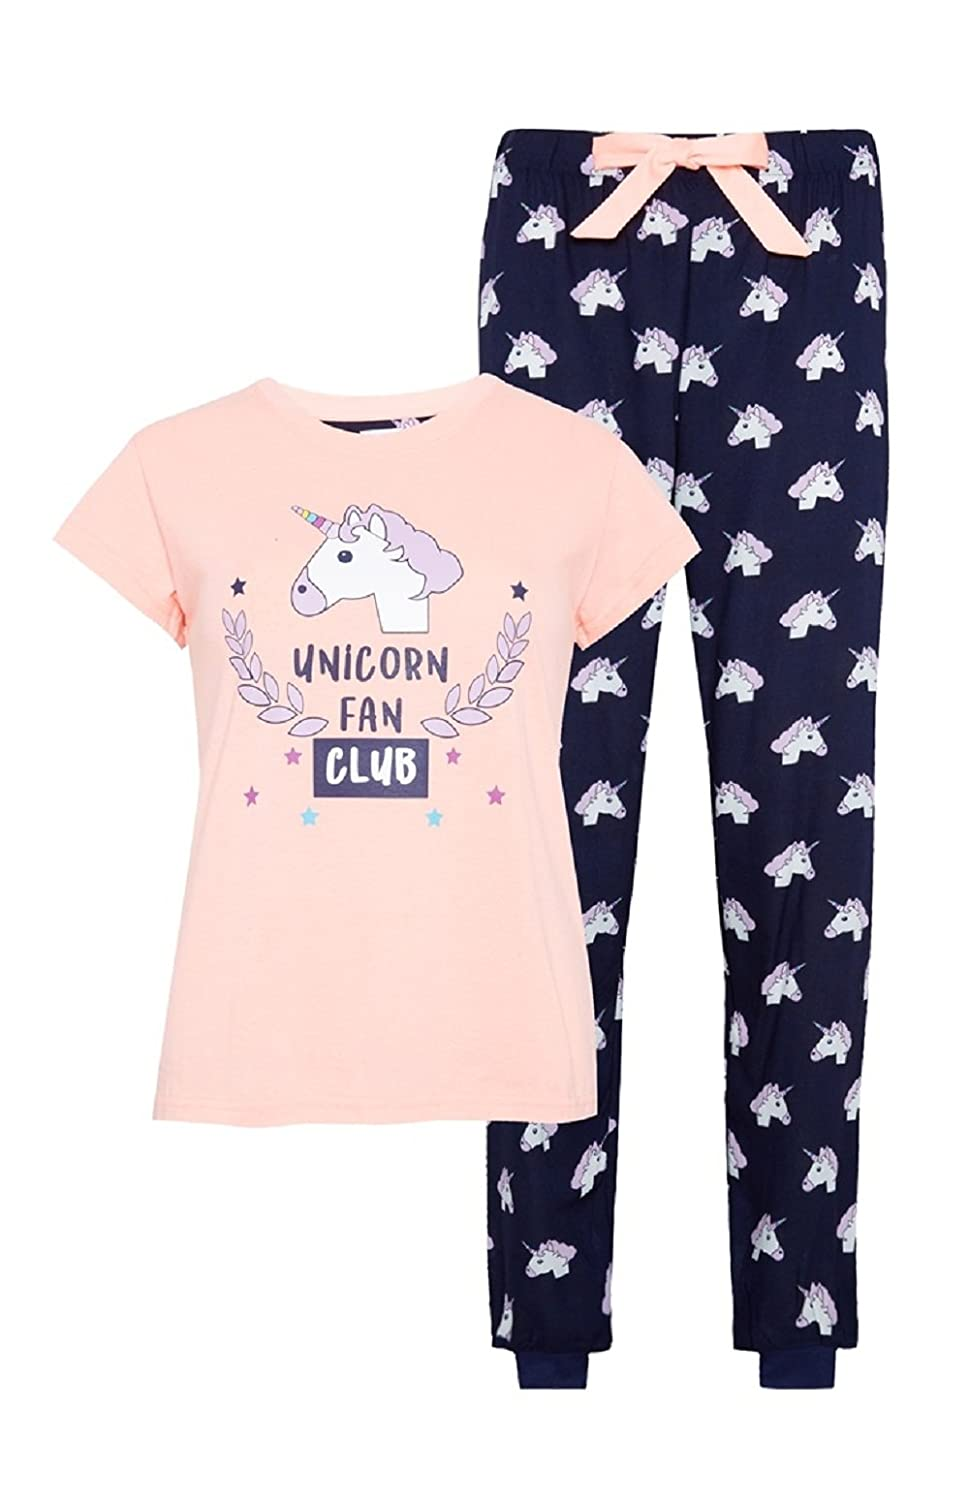 Primark Ladies My Little Pony IN UNICORNS Nightwear Tshirt